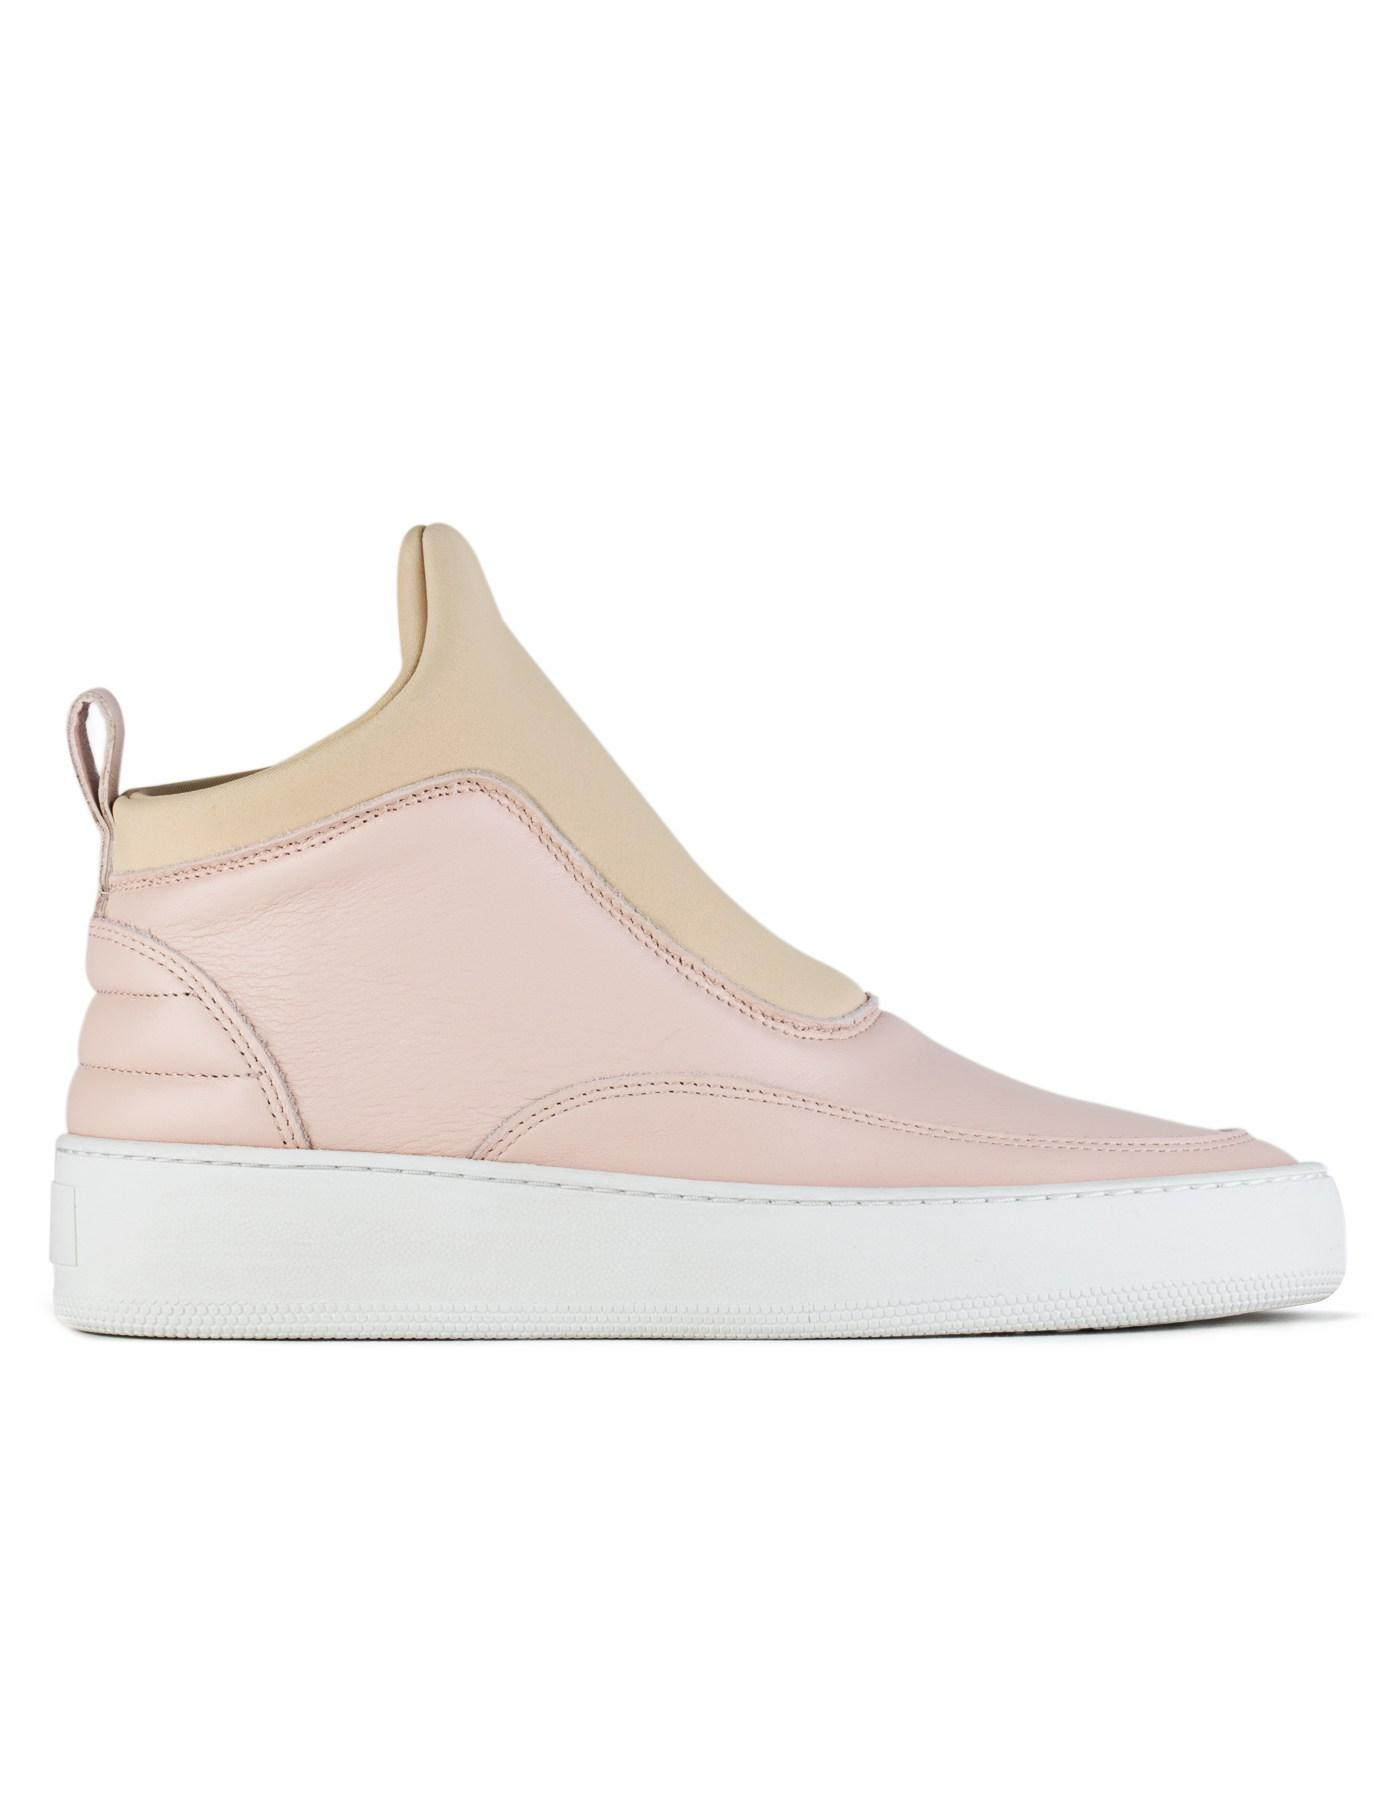 Filling Lyst High Pieces Avalanche Gf Sneakers 0RxqP4wx